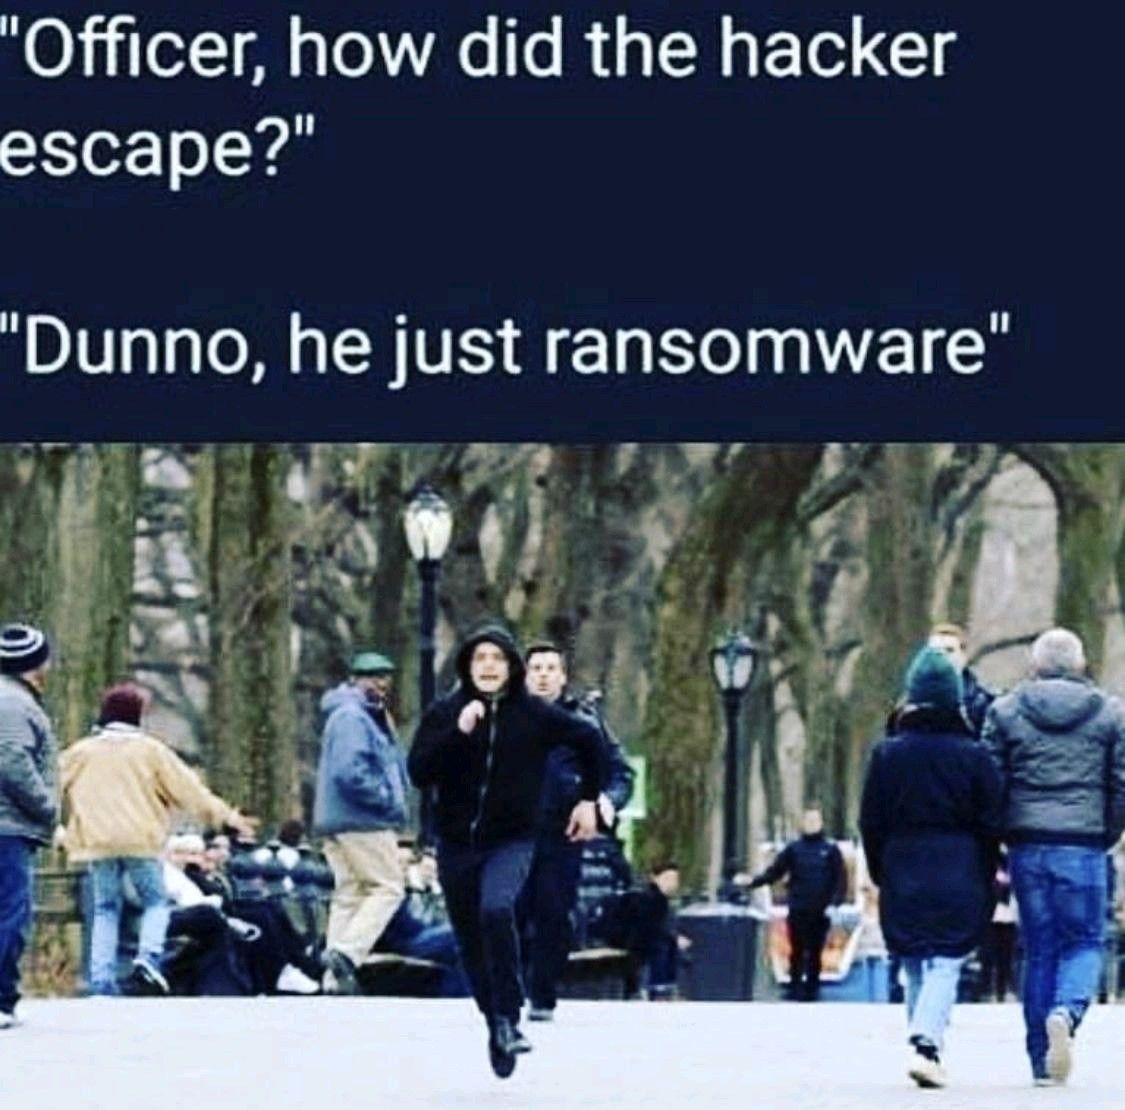 Should've put him in a CryptoLocker!!!